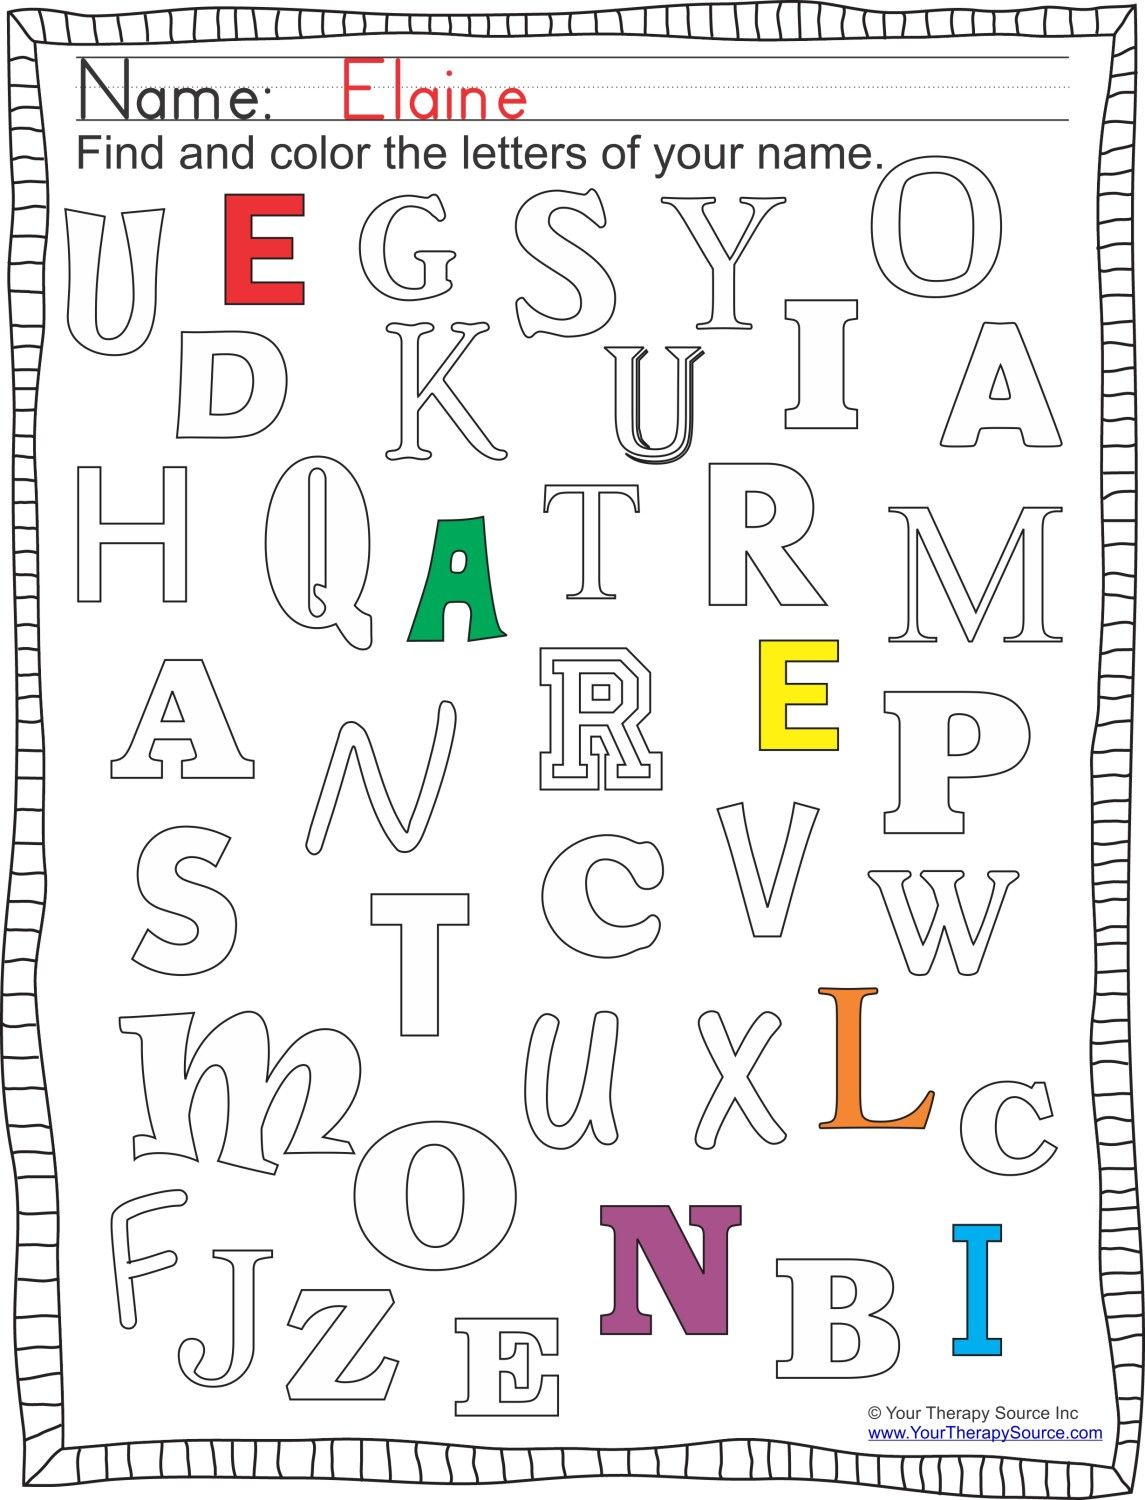 How To Teach A Child To Write His Name Without Actually